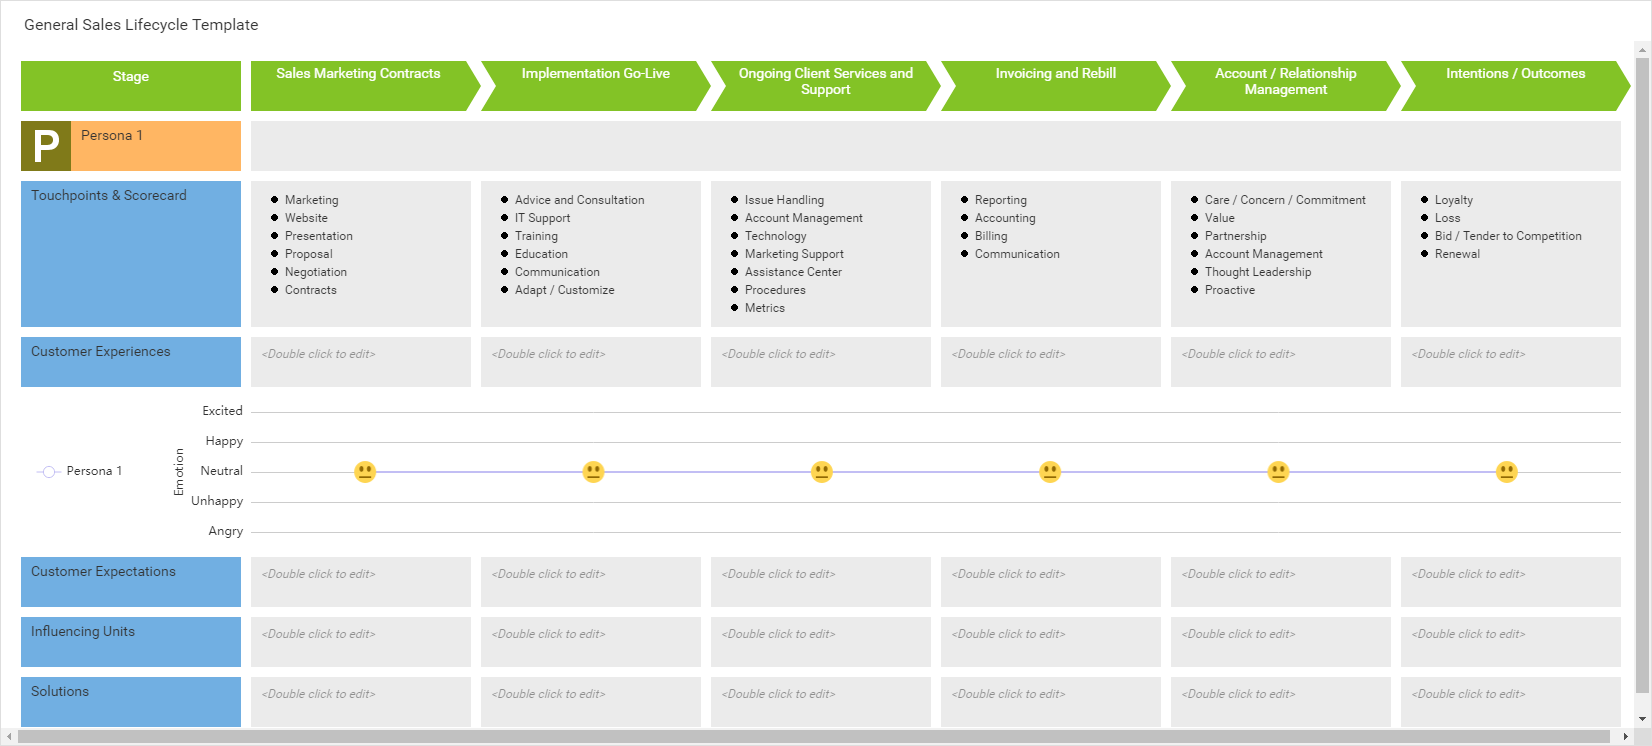 General Sales Lifecycle Template